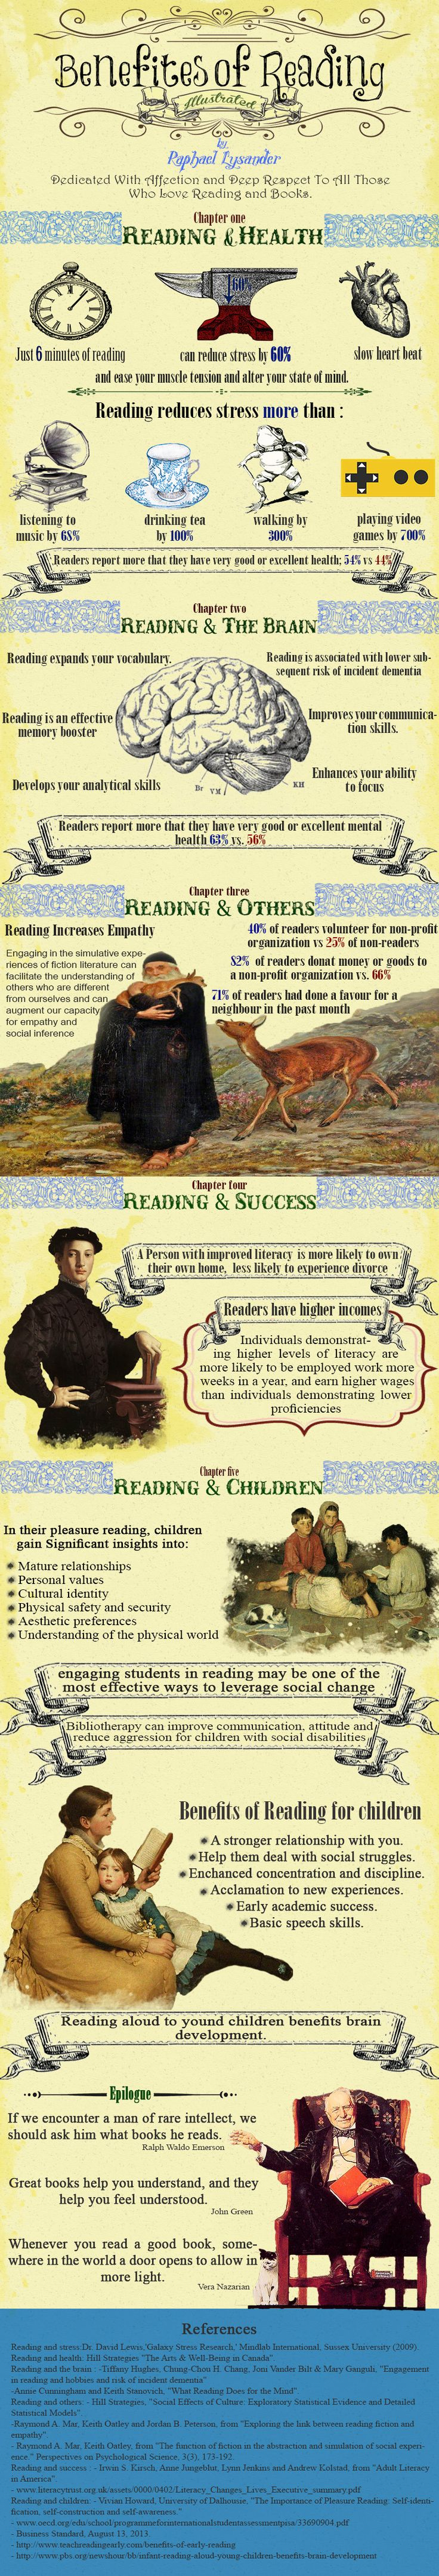 Benifets of Reading Infographic by Raphael Lysander